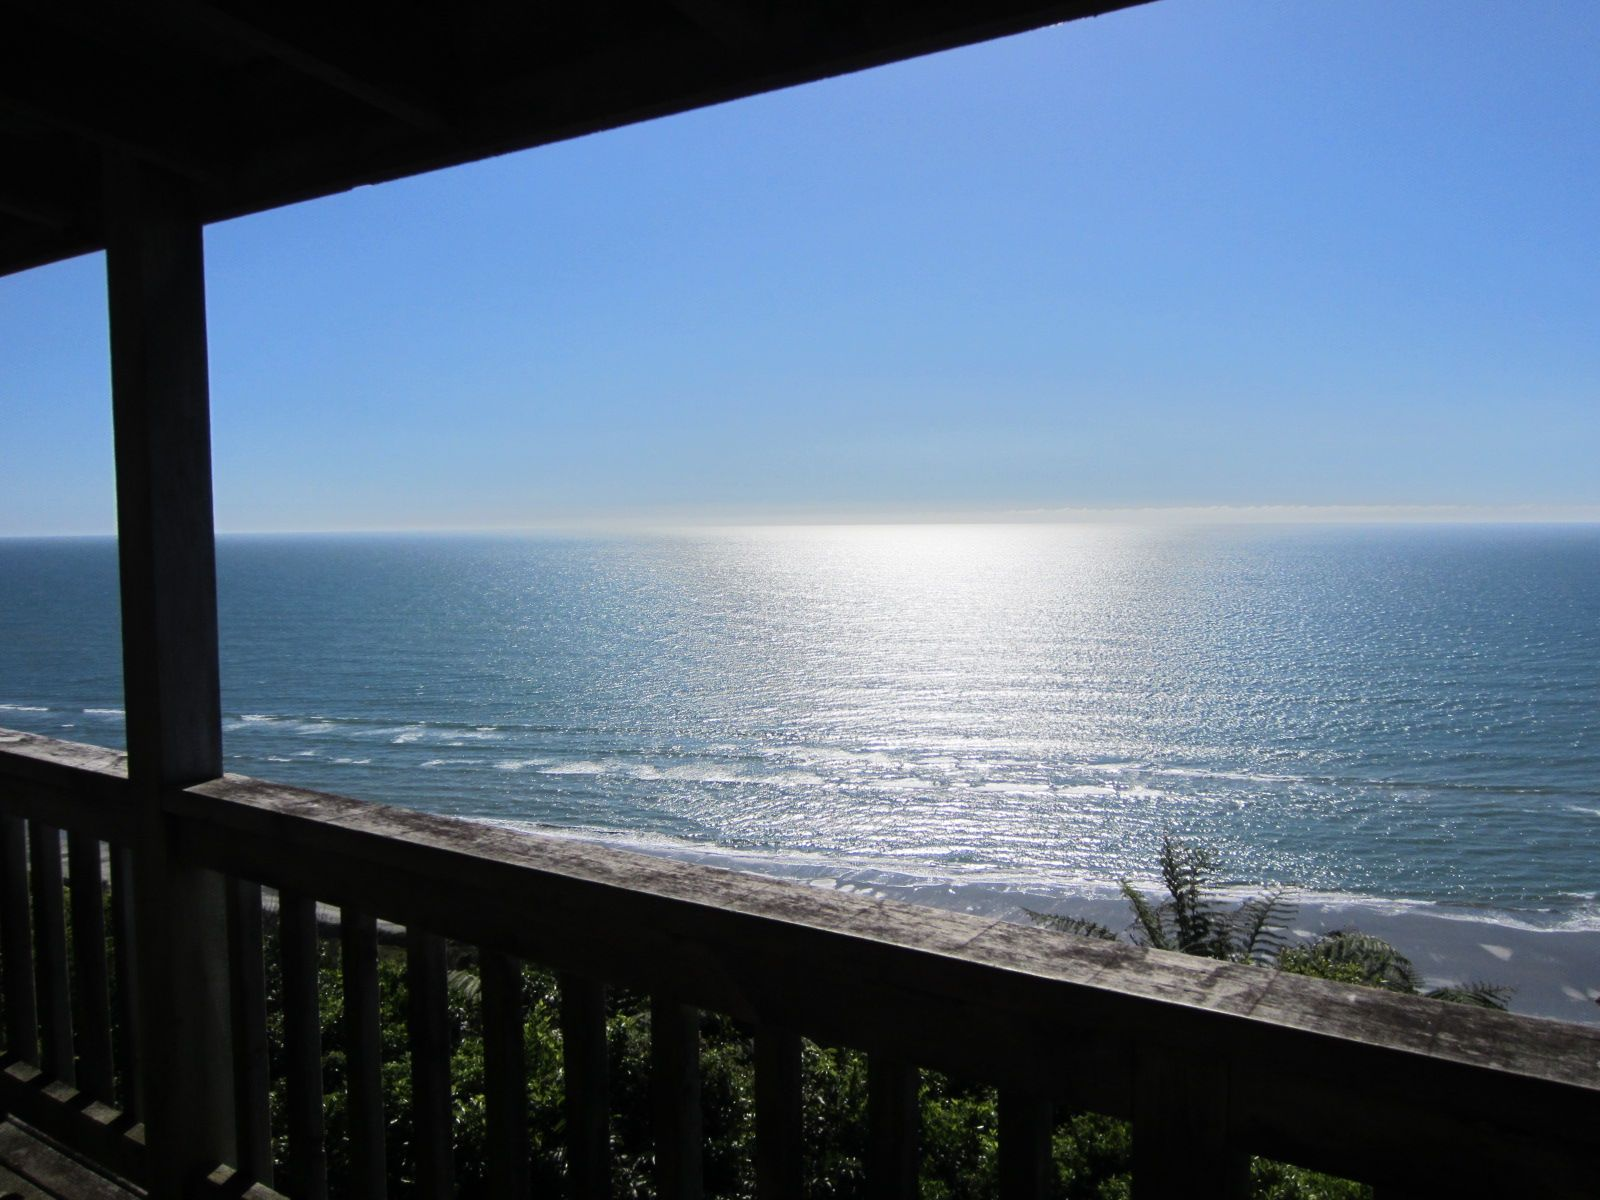 View of the Tasman Sea from veranda